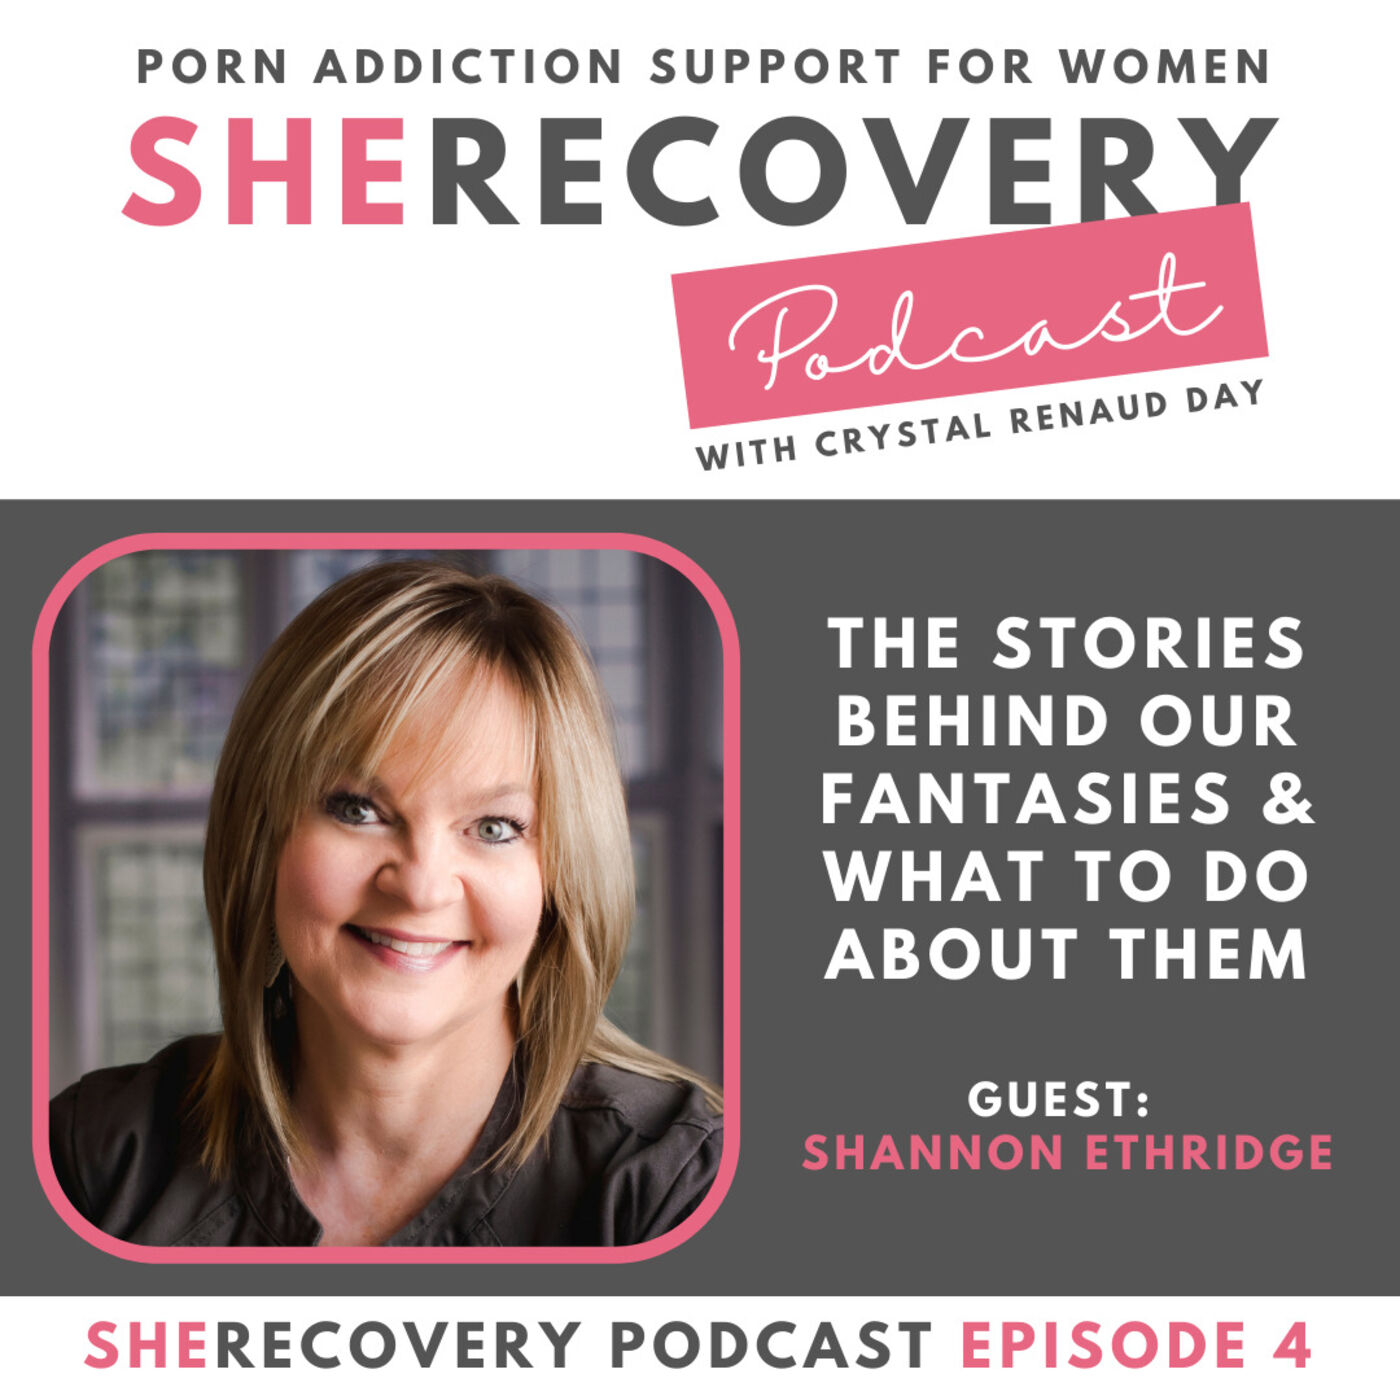 S1 E4: Shannon Ethridge - The Stories Behind Our Fantasies & What to Do About Them